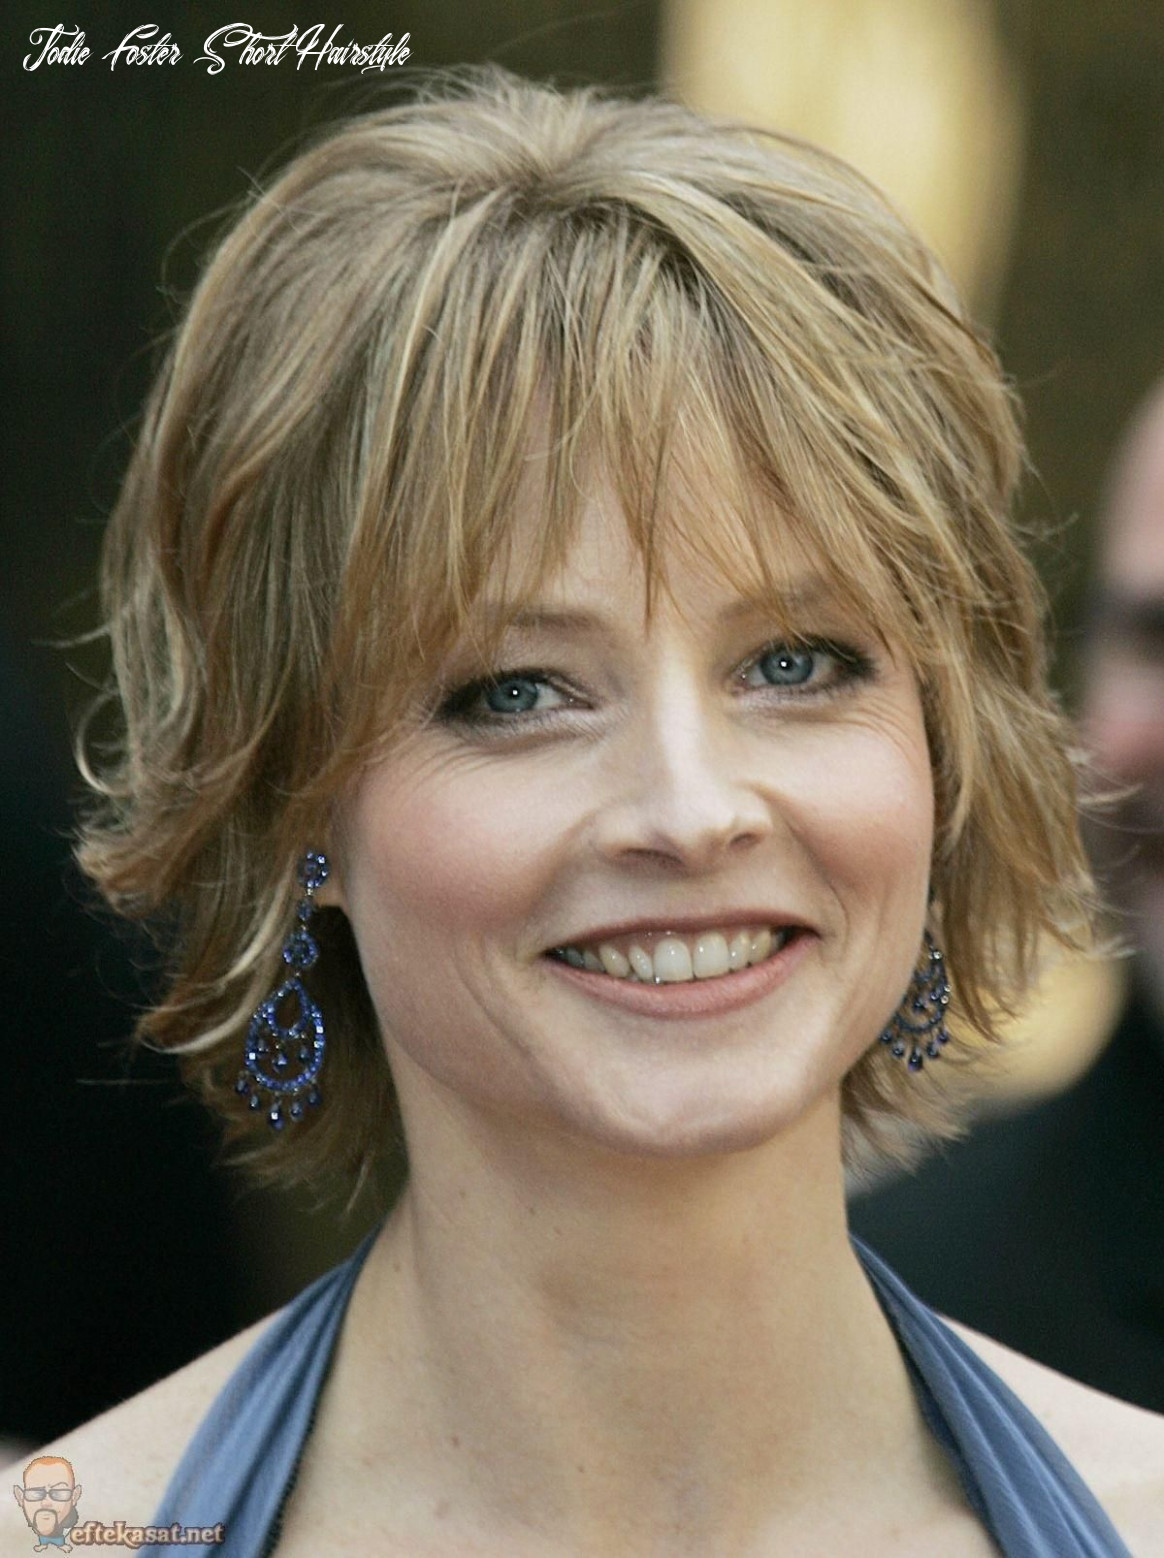 Pin em hairstyles jodie foster short hairstyle